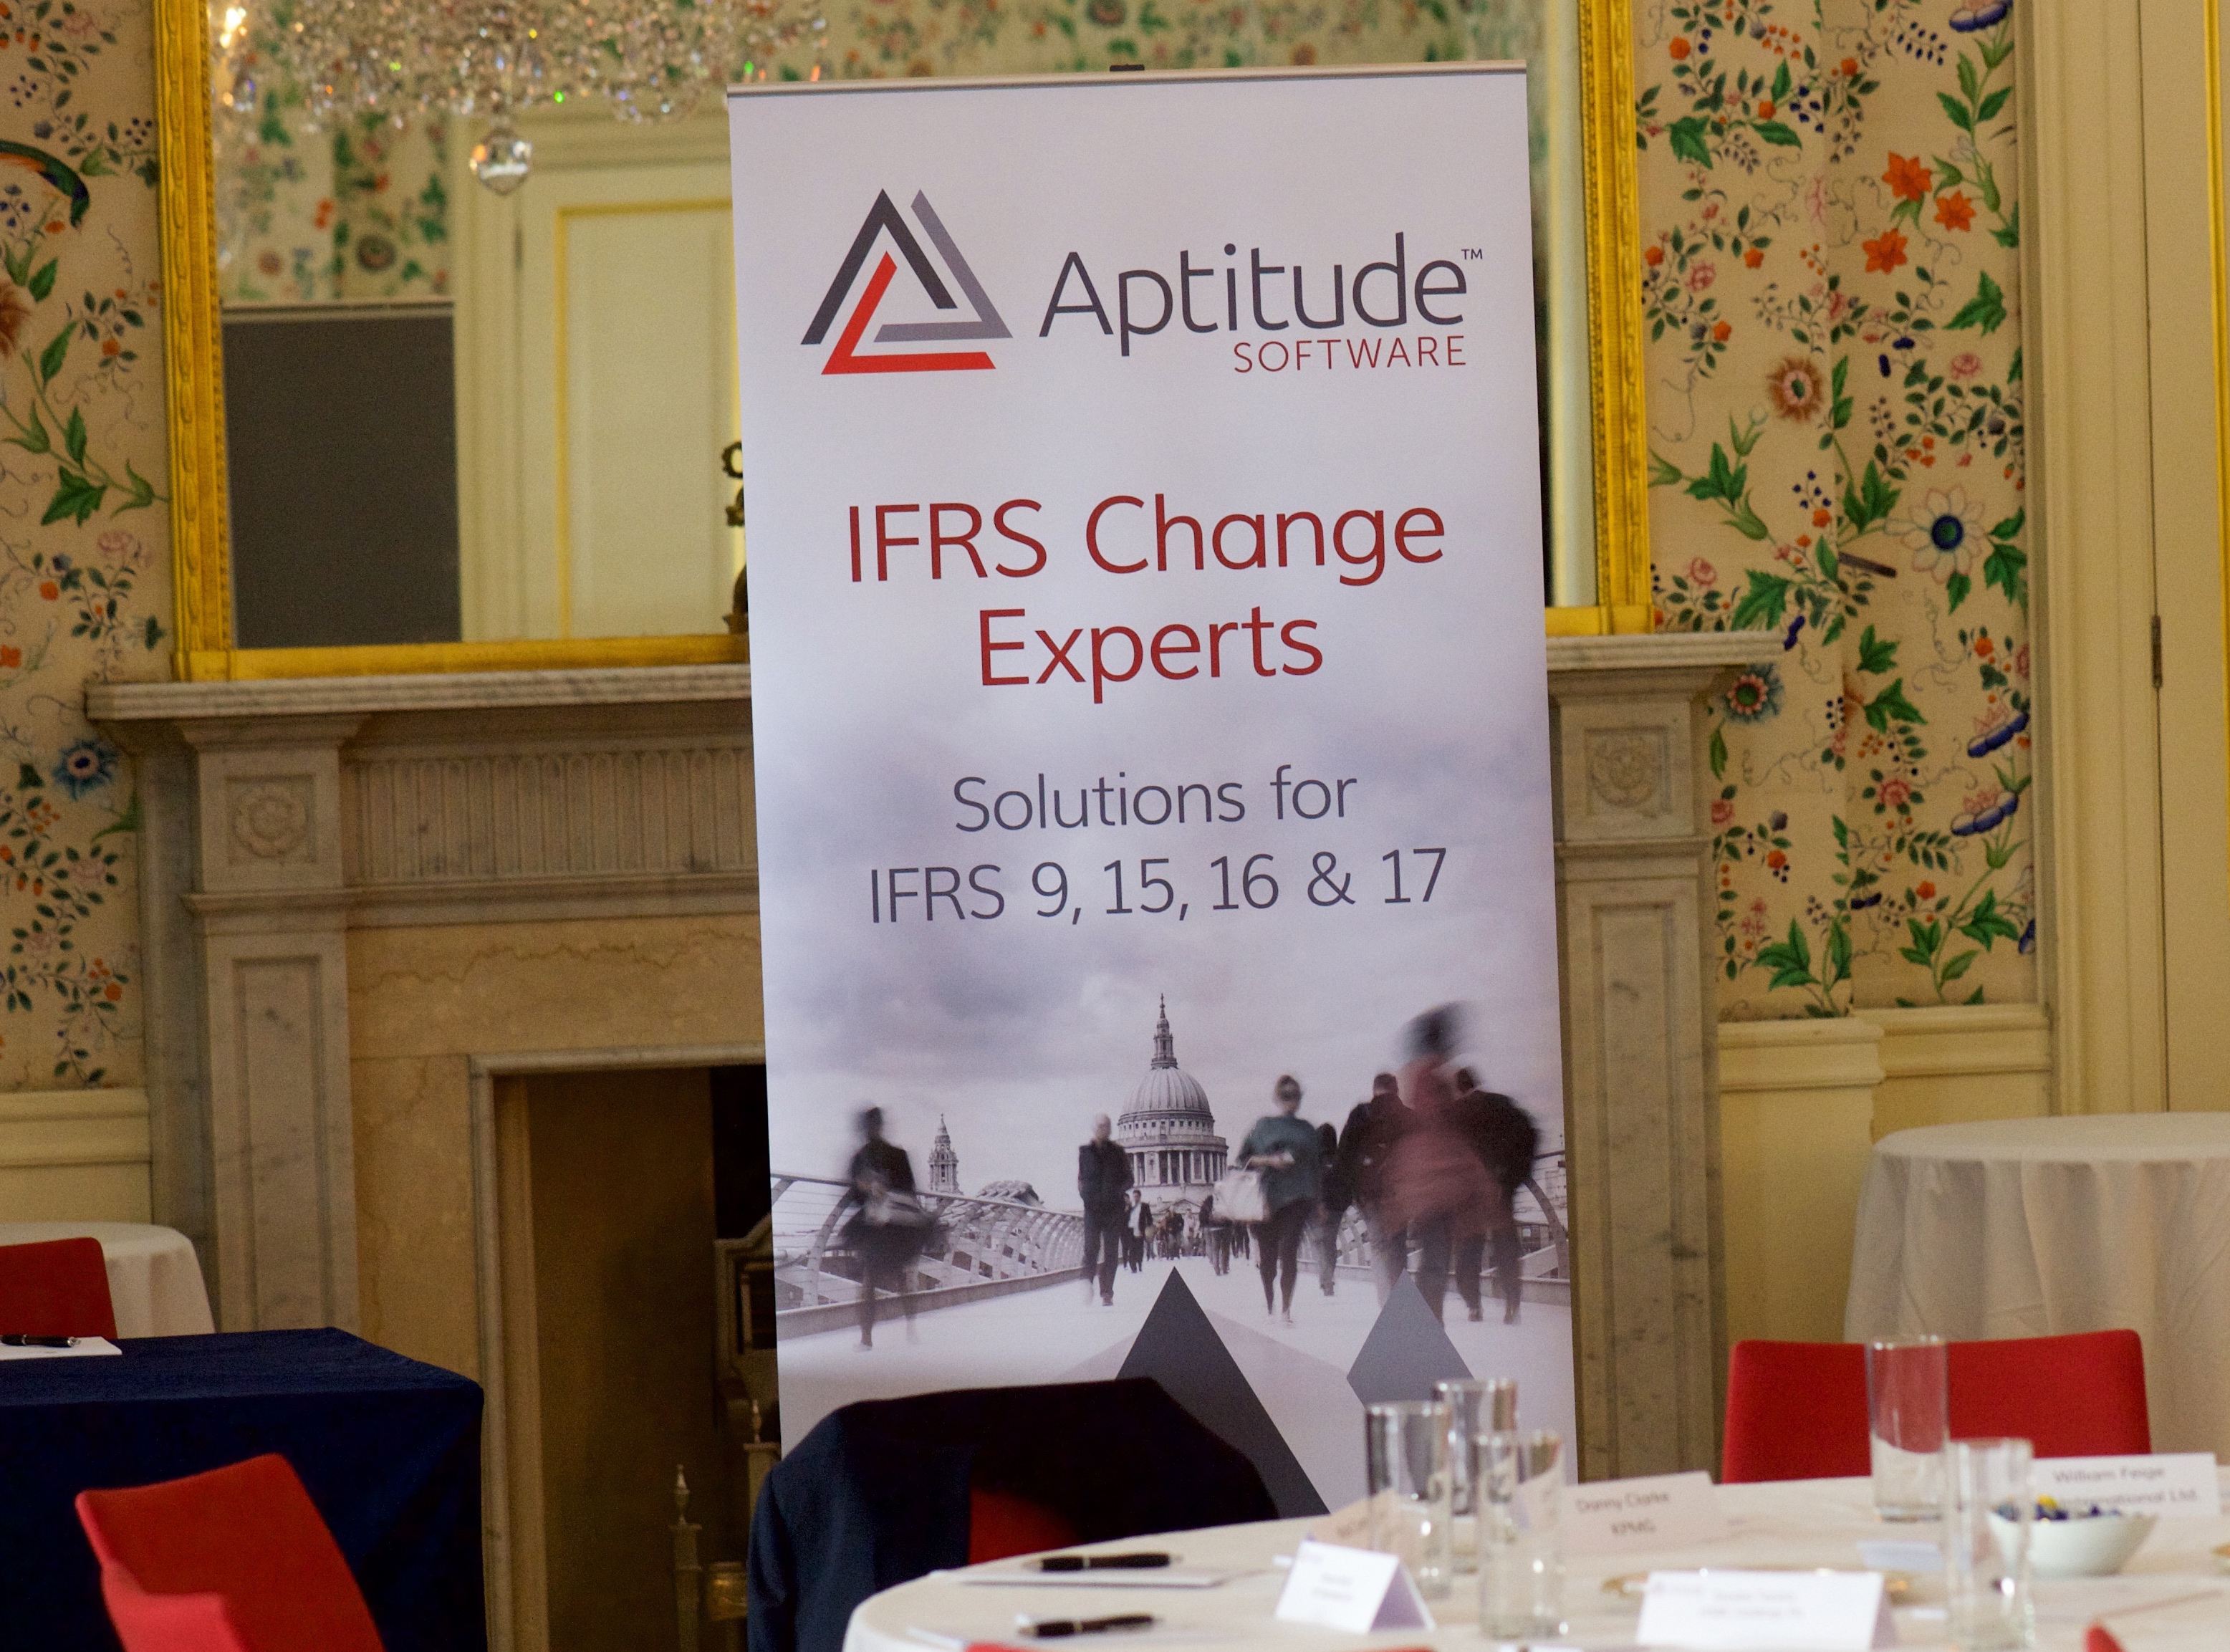 Lease accounting solutions for IFRS 16, ASC 842 from Aptitude Software (Photo: Business Wire)